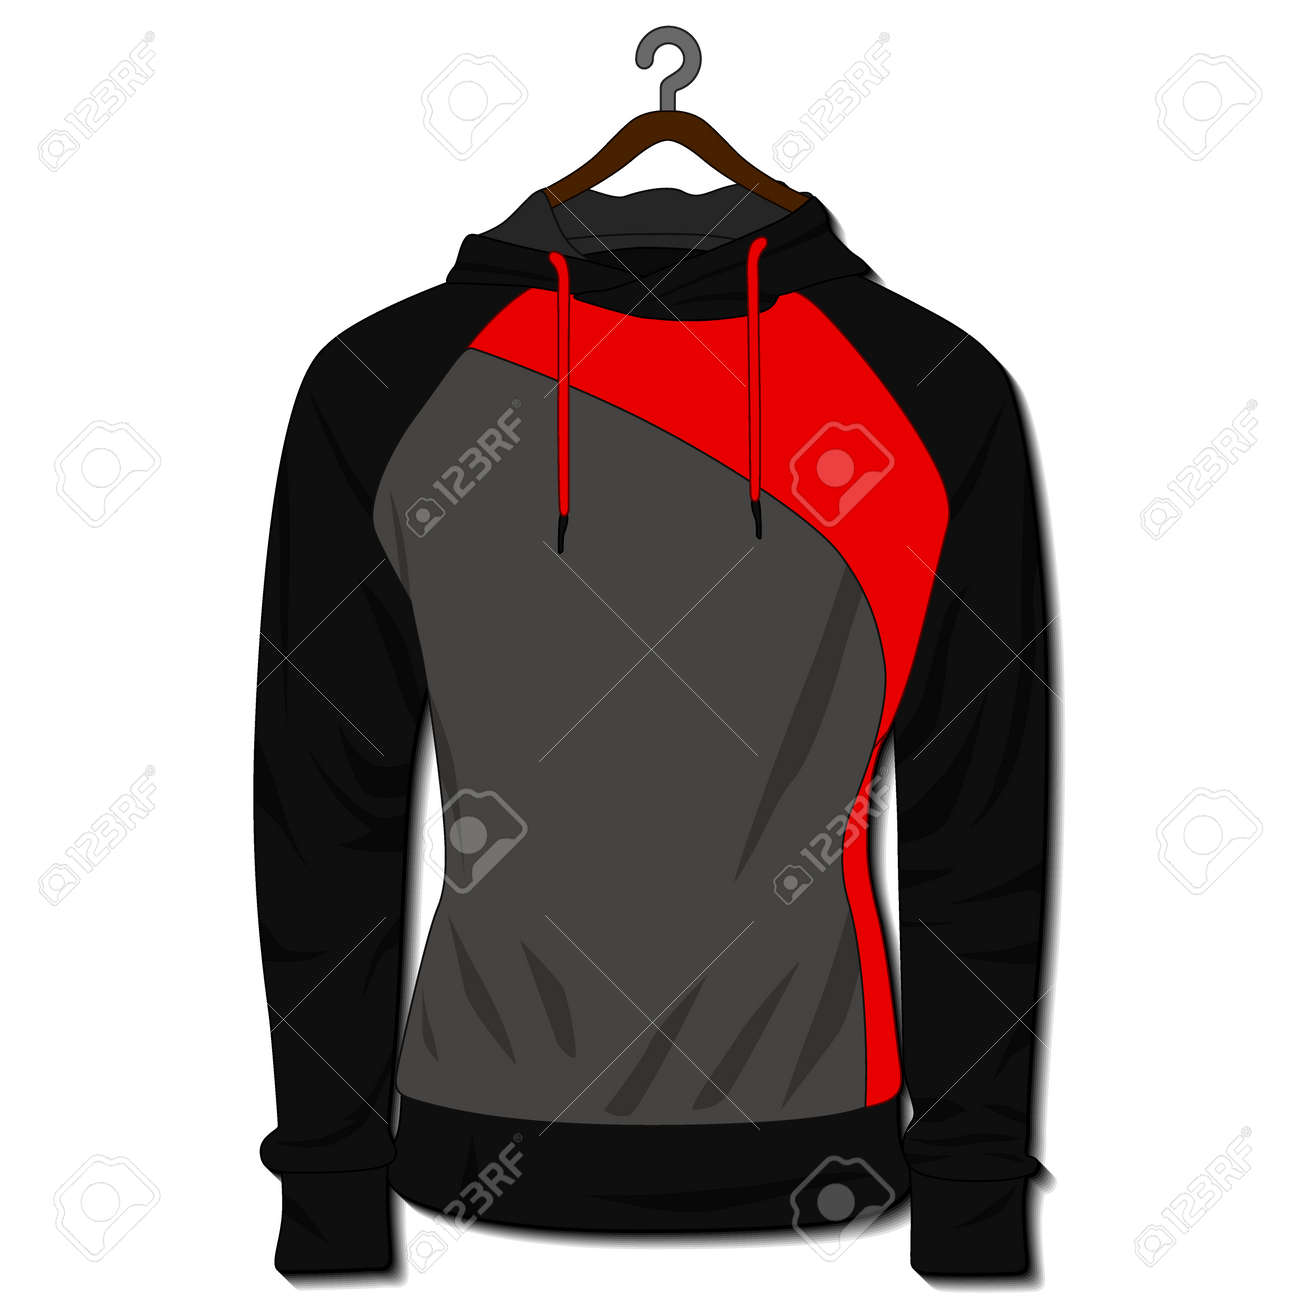 Hoodie jacket isolated on white background. Mockup template - 168266875